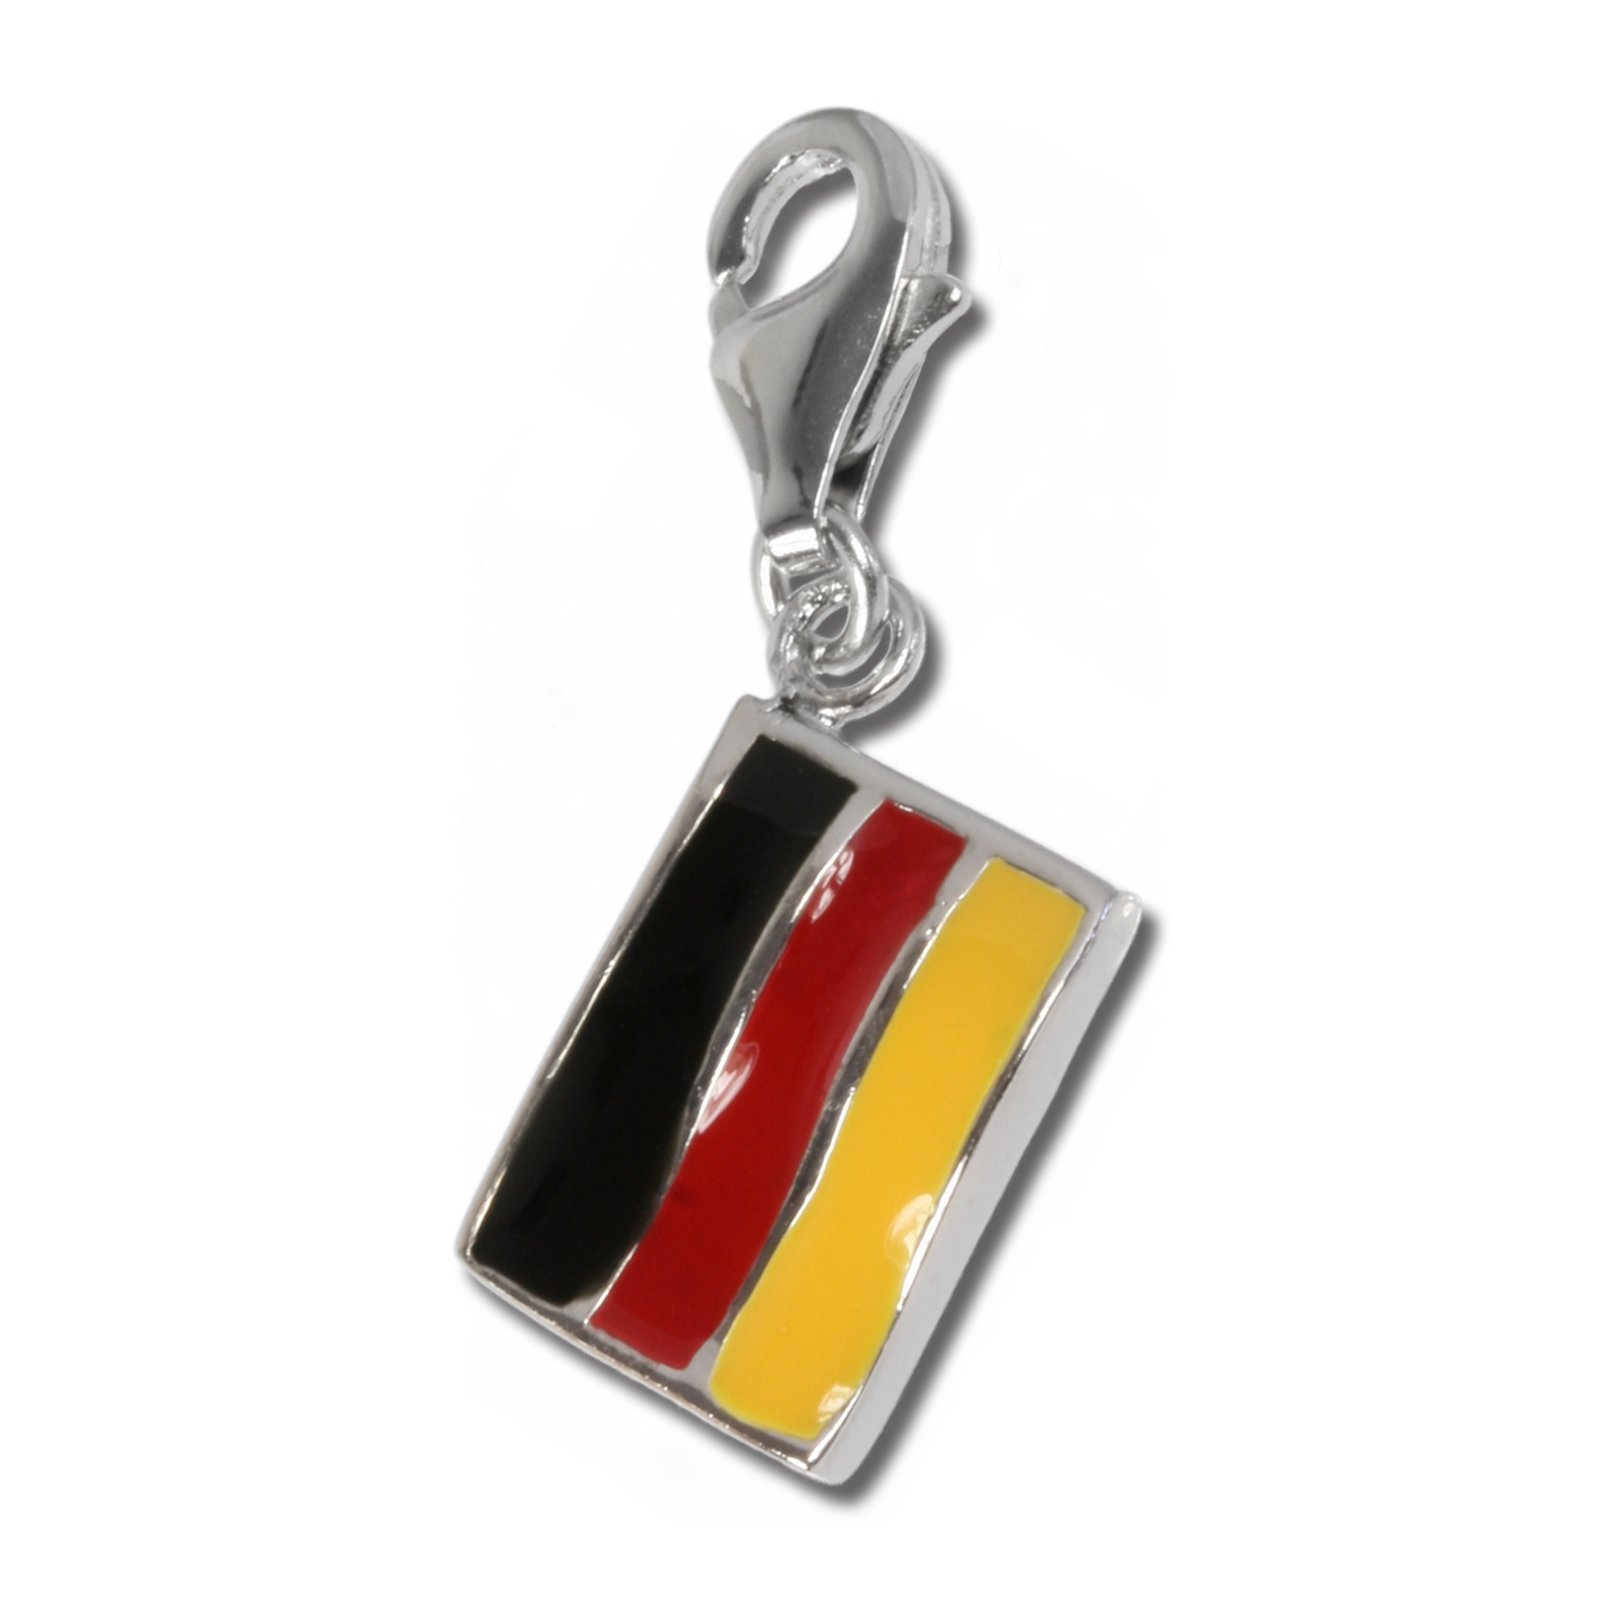 SilberDream Charm flag Germany, 925 Sterling Silver Charms Pendant with Lobster Clasp for Charms Bracelet, Necklace or Earring FC702